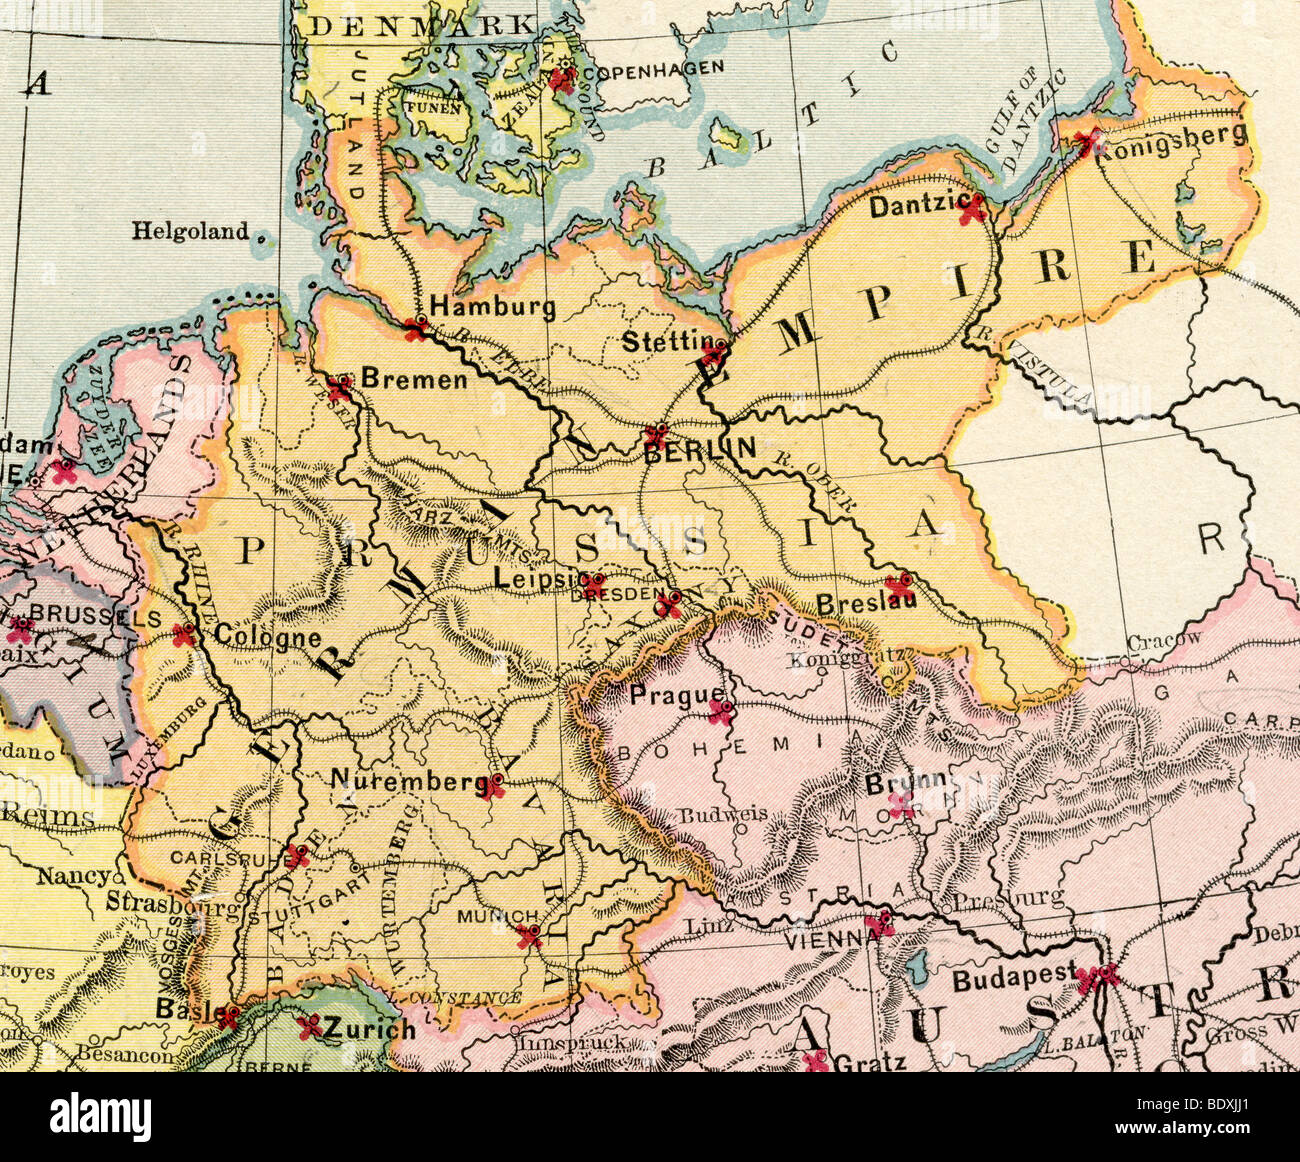 Original old map of Germany from 1875 geography textbook Stock